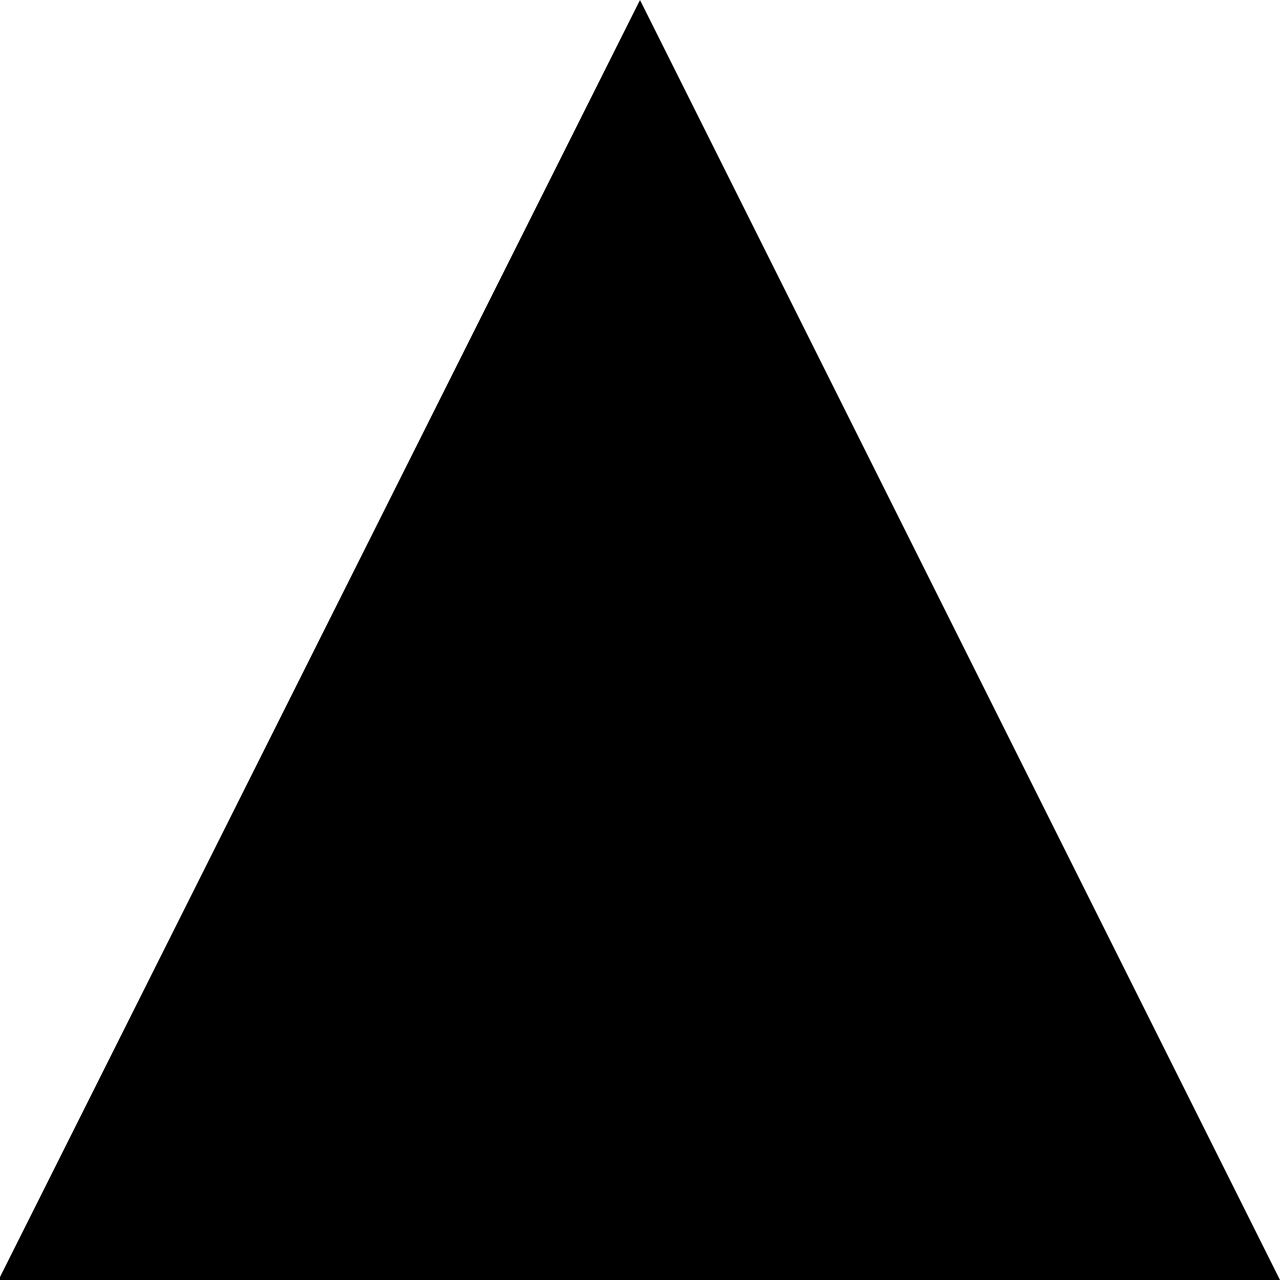 Black Triangle Pictures to Pin on Pinterest - PinsDaddy